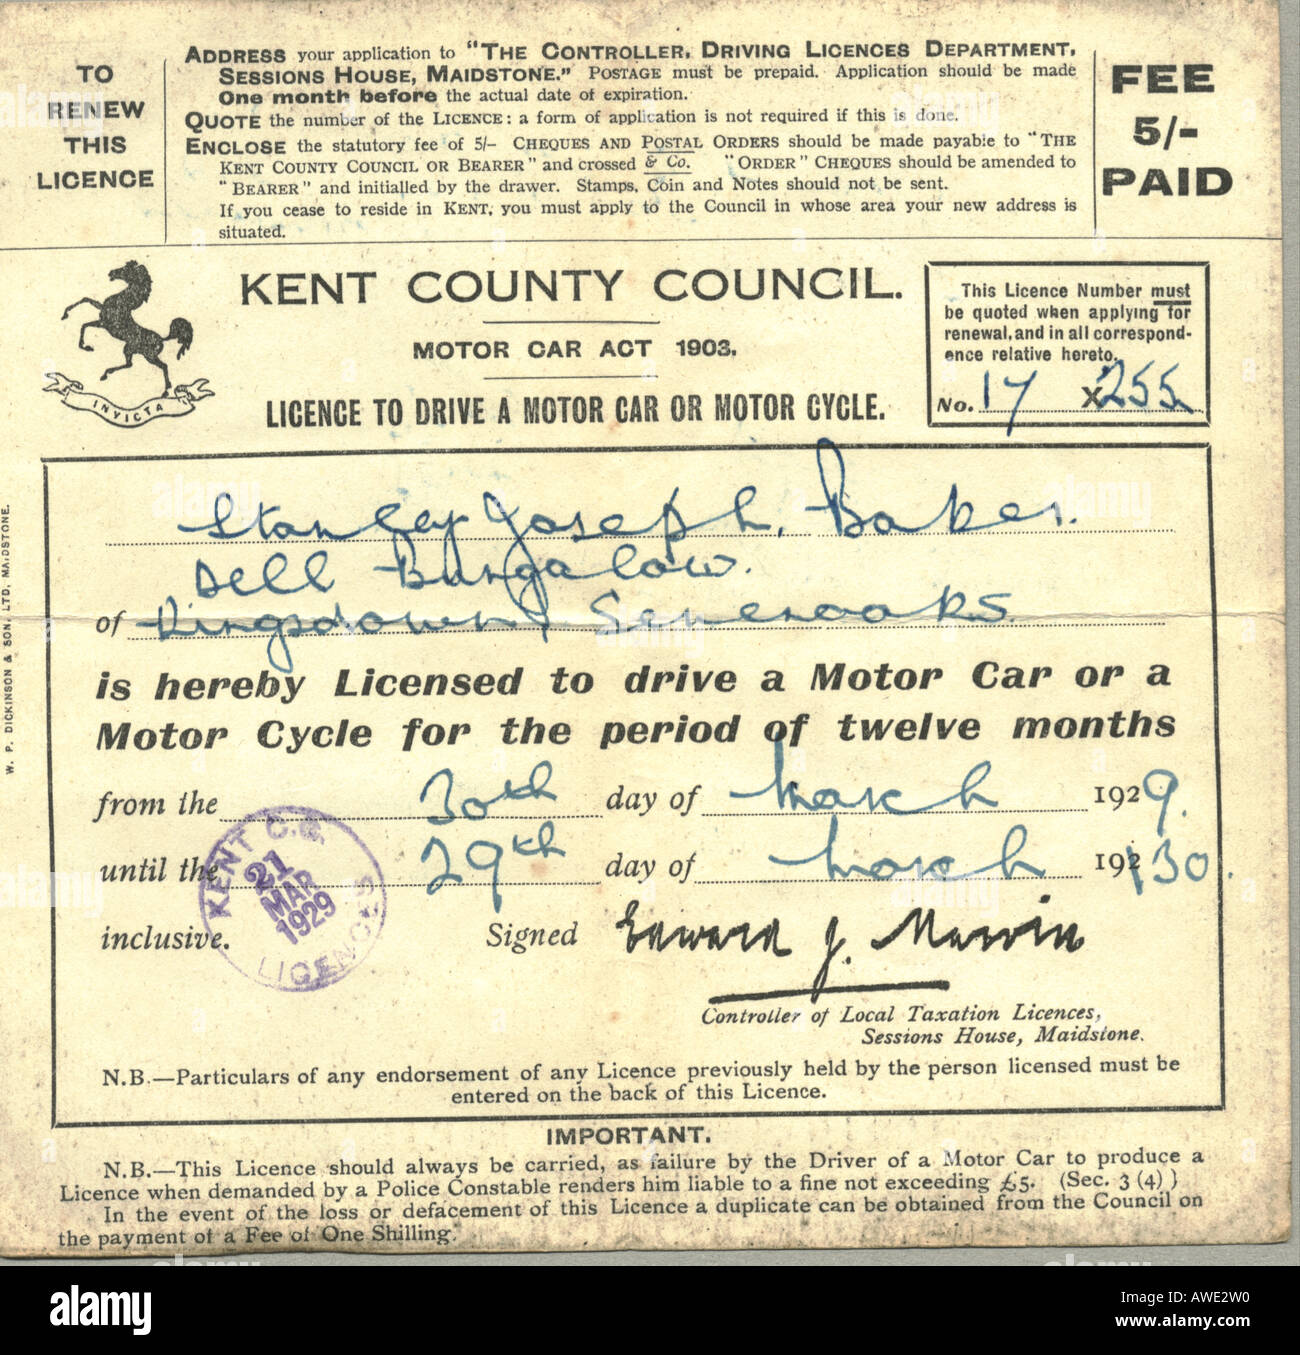 Motor car driving licence 1929 Stock Photo: 9458703 - Alamy